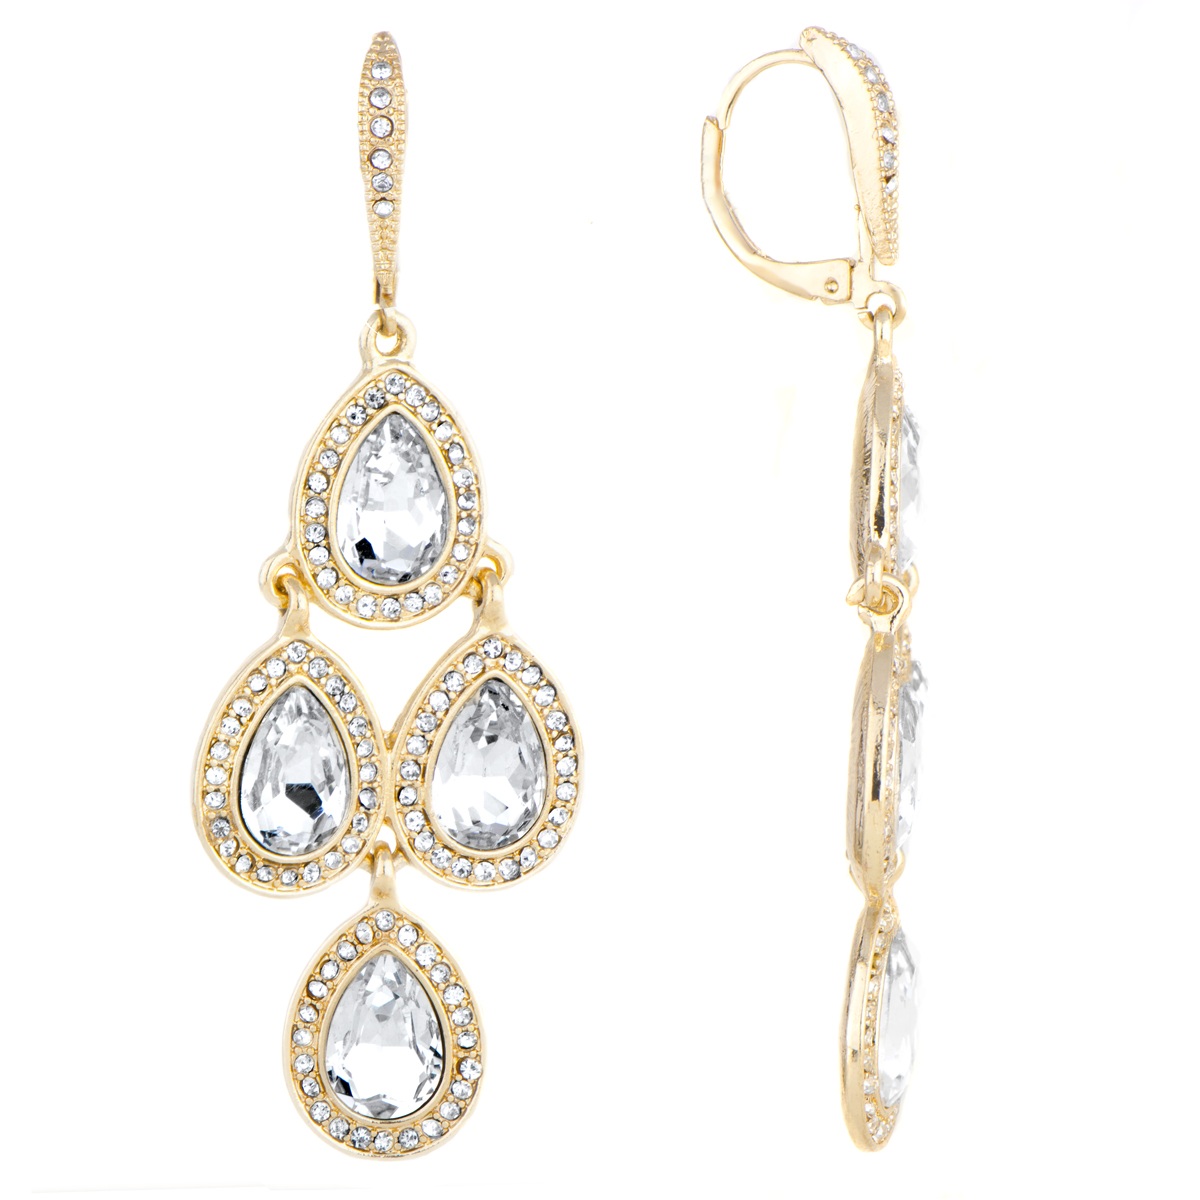 Goldtone Rhinestone Chandelier Earrings – Gold Tone Chandelier Earrings